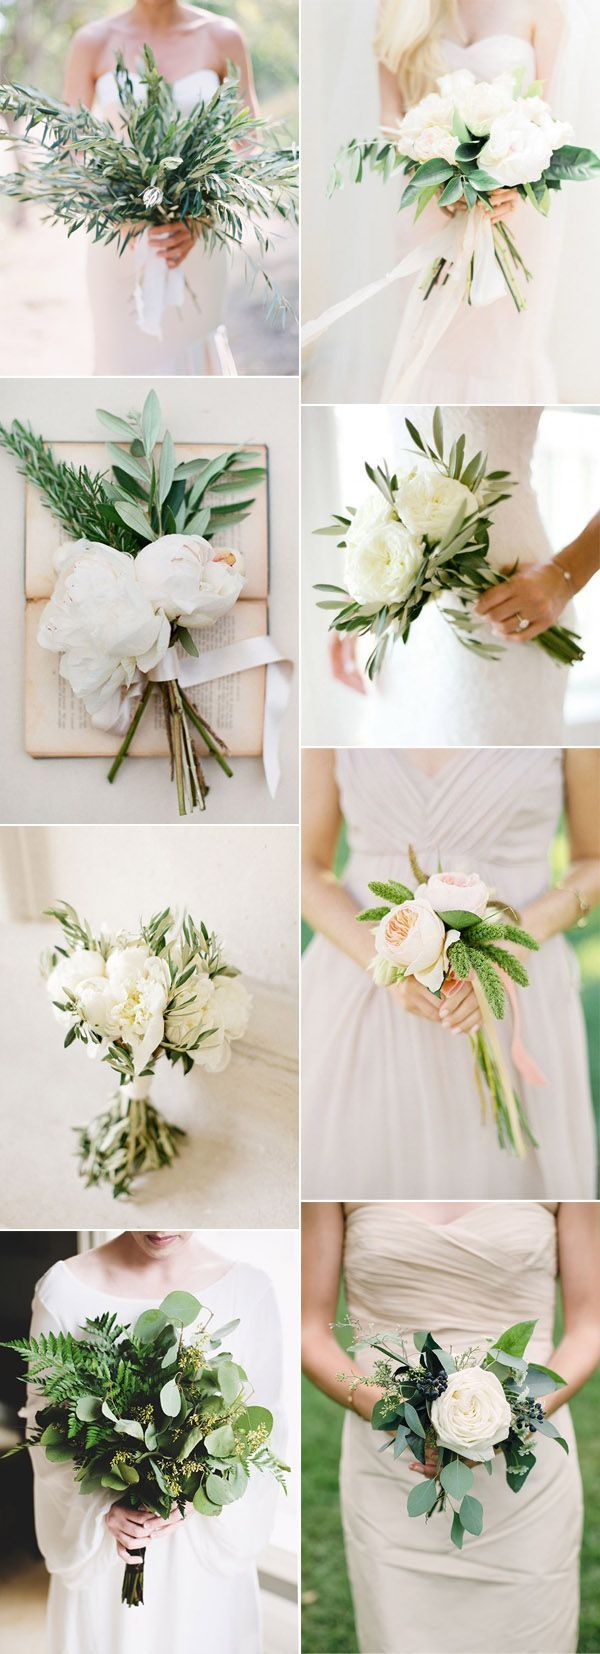 simple bouquets for weddings best 25 single flower bouquet ideas on simple 7473